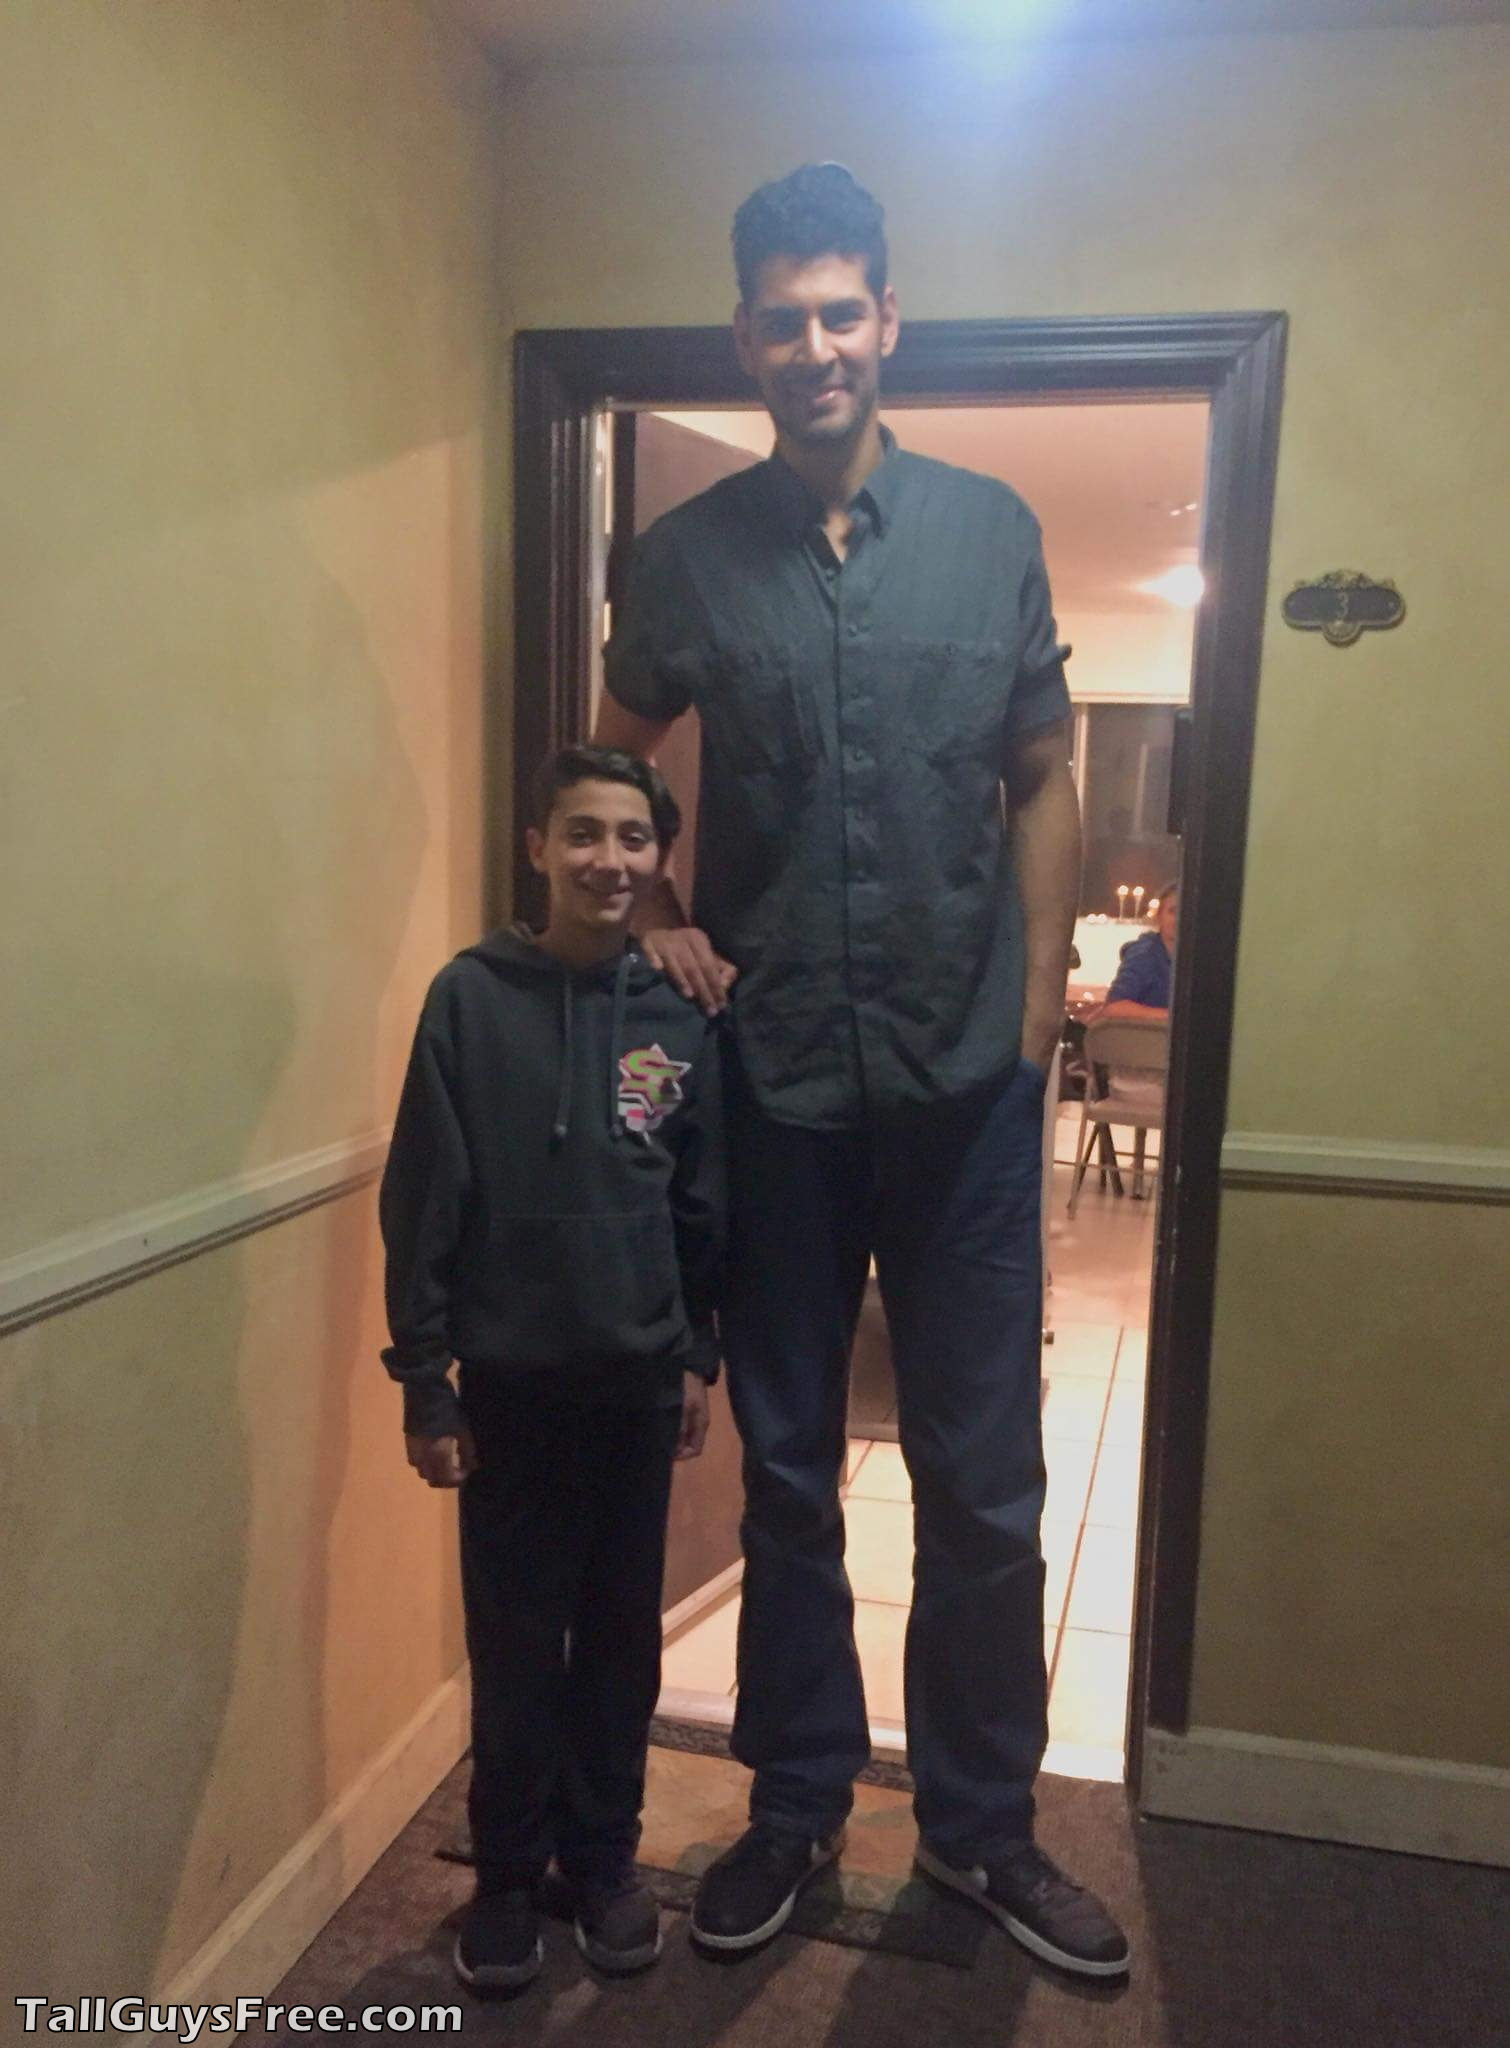 7ft1 person towers over his tiny friend